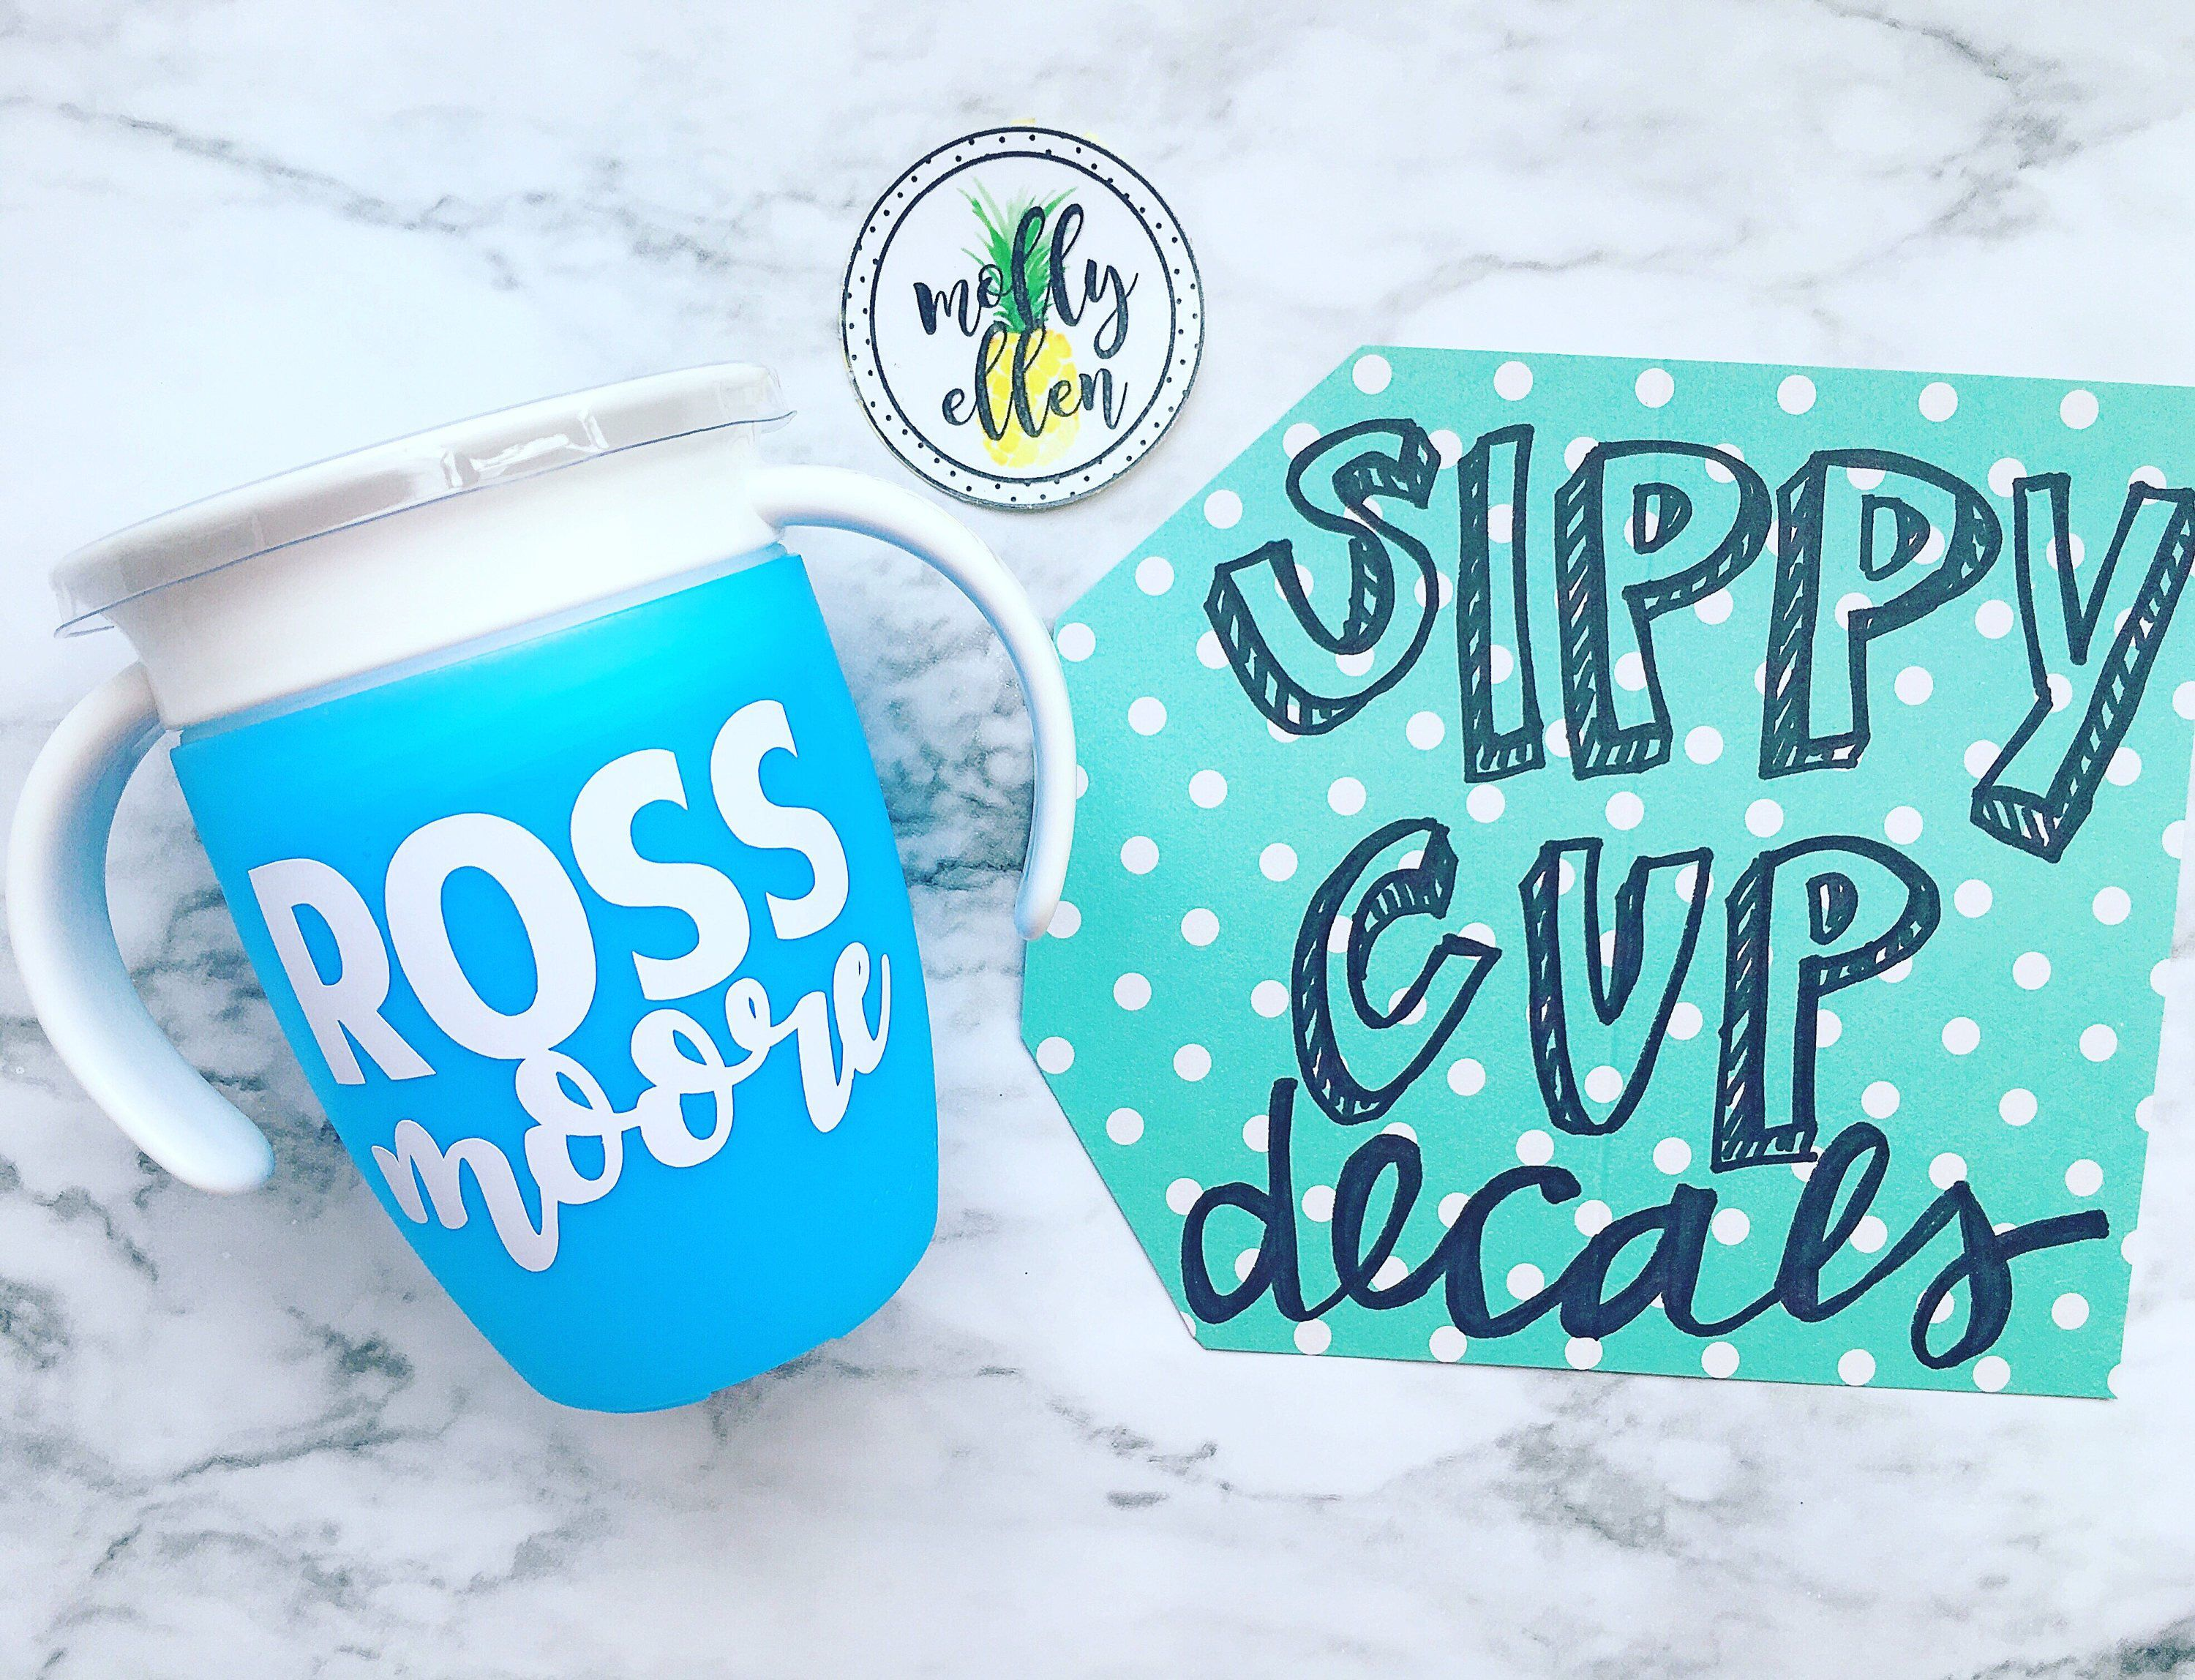 Excited to share this item from my etsy shop sippy cup decals housewares babyshower toddlercup cupdecal supercute dishwashersafe waterresistant